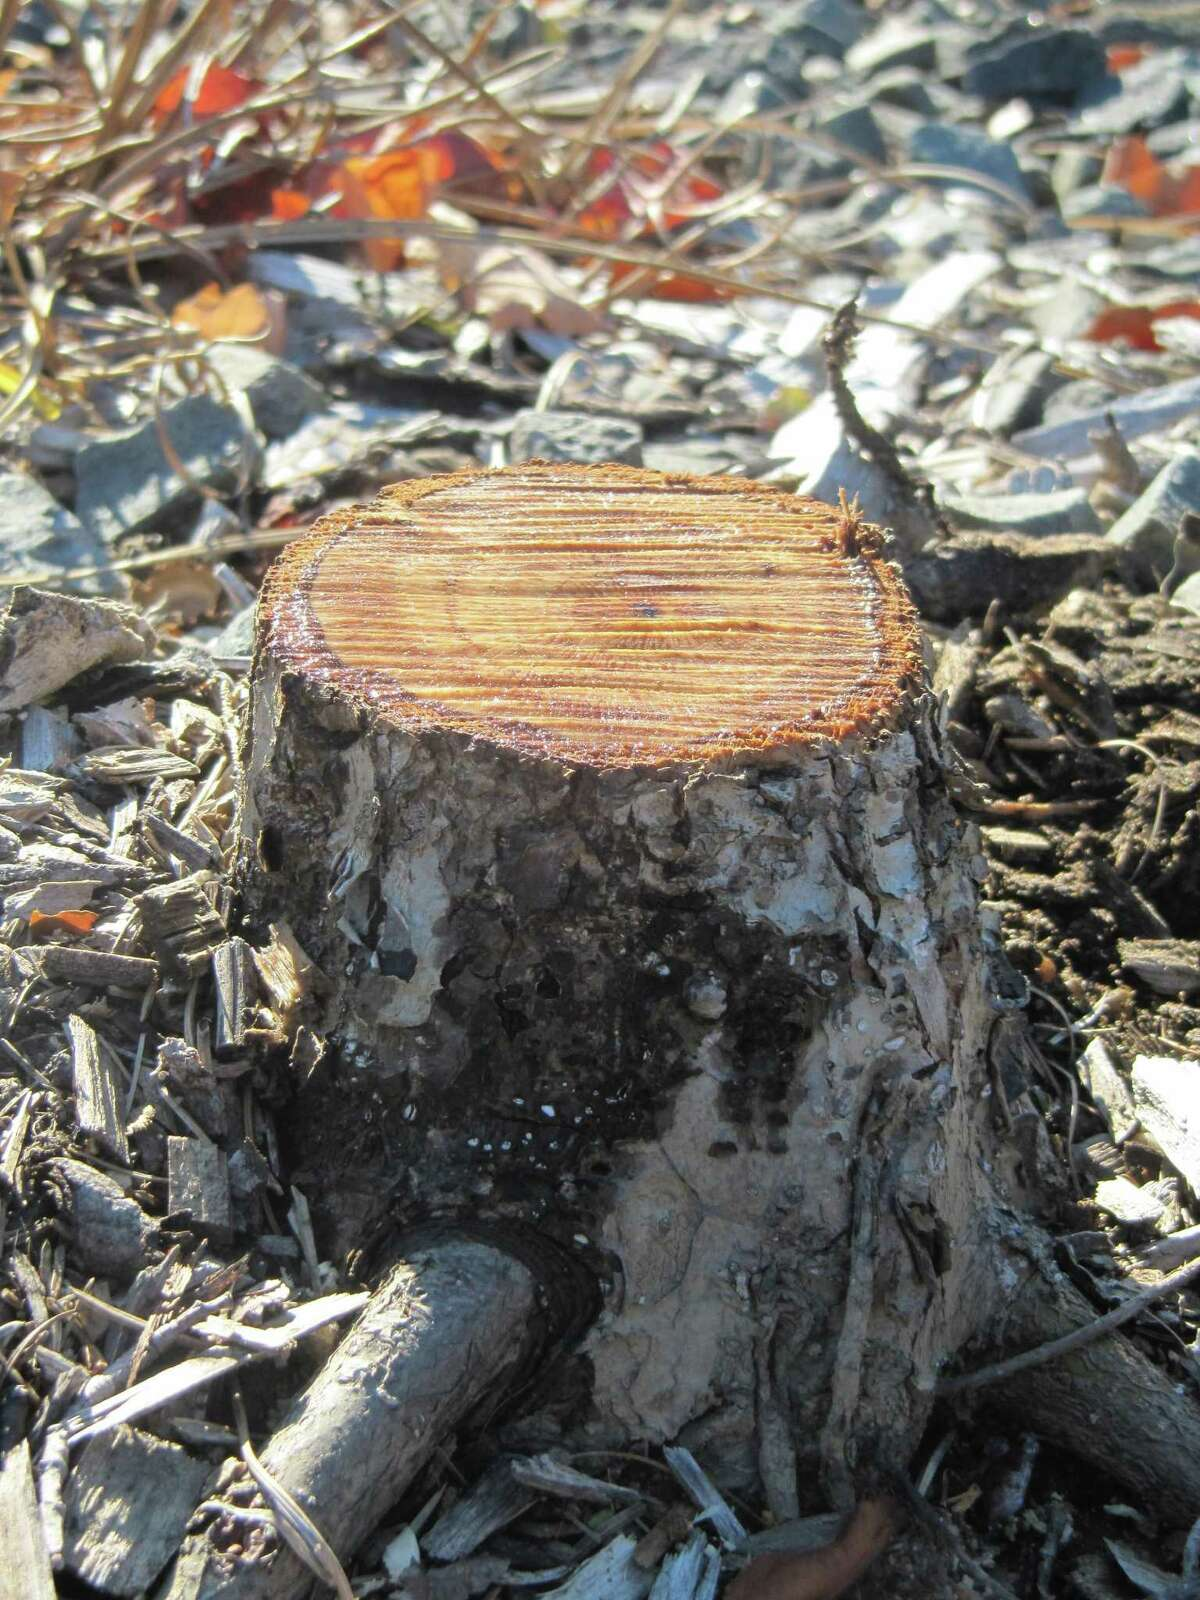 Pictured is the stump of a tree that was axed at Lake Mohegan.